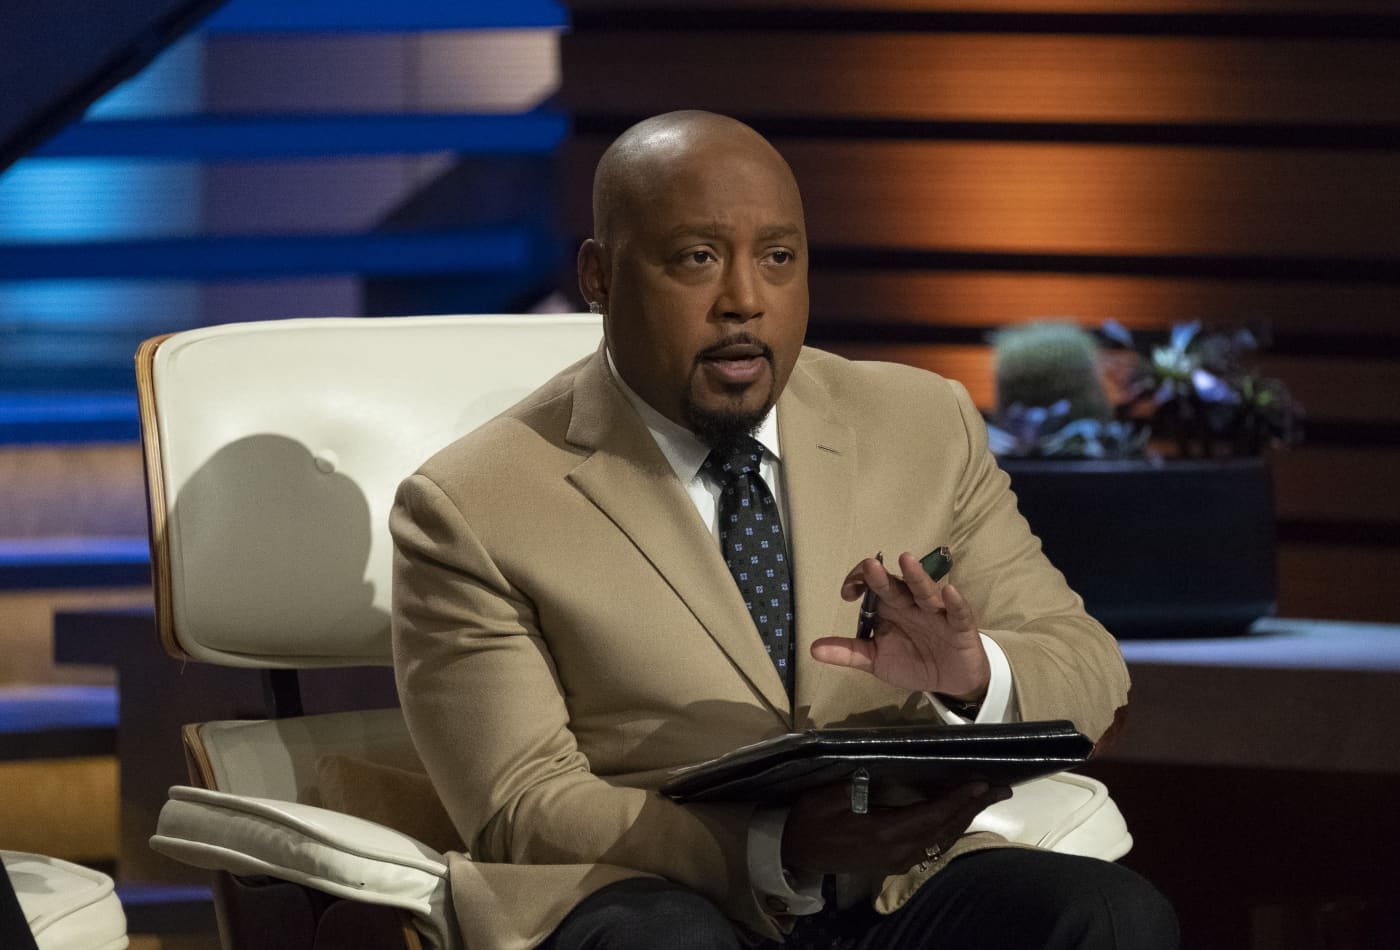 Daymond John started writing down goals at age 16: 'I actually became the man I thought I would be by 30'